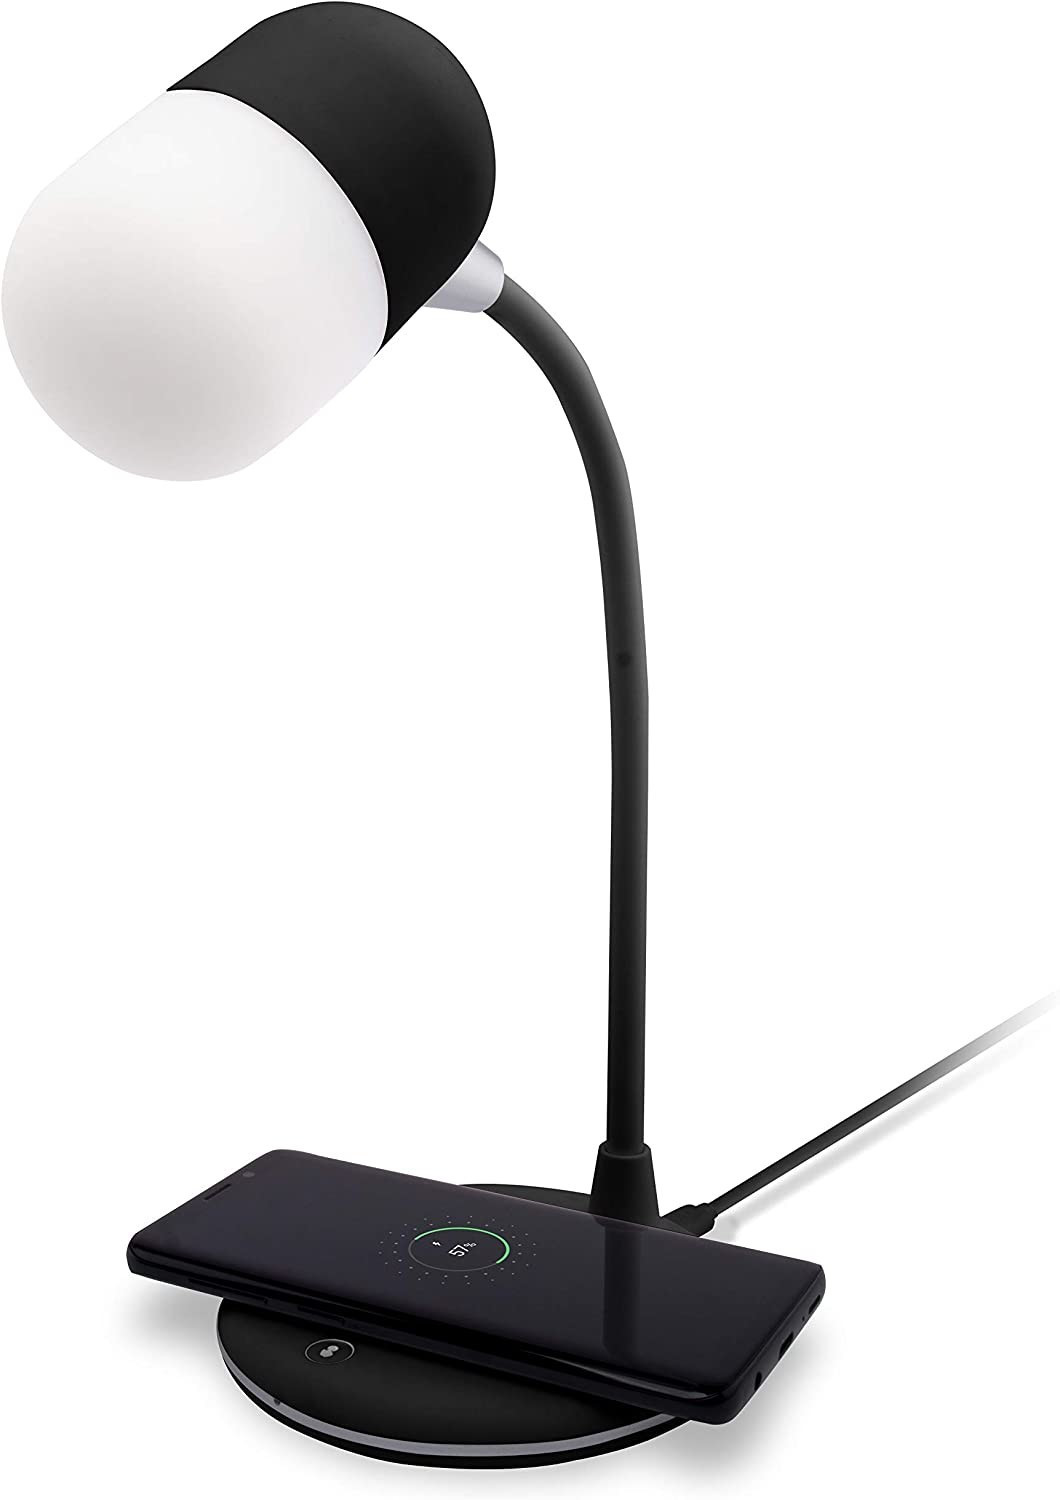 Image of Groov-e Apollo Touch Lamp With Bluetooth Speaker Black